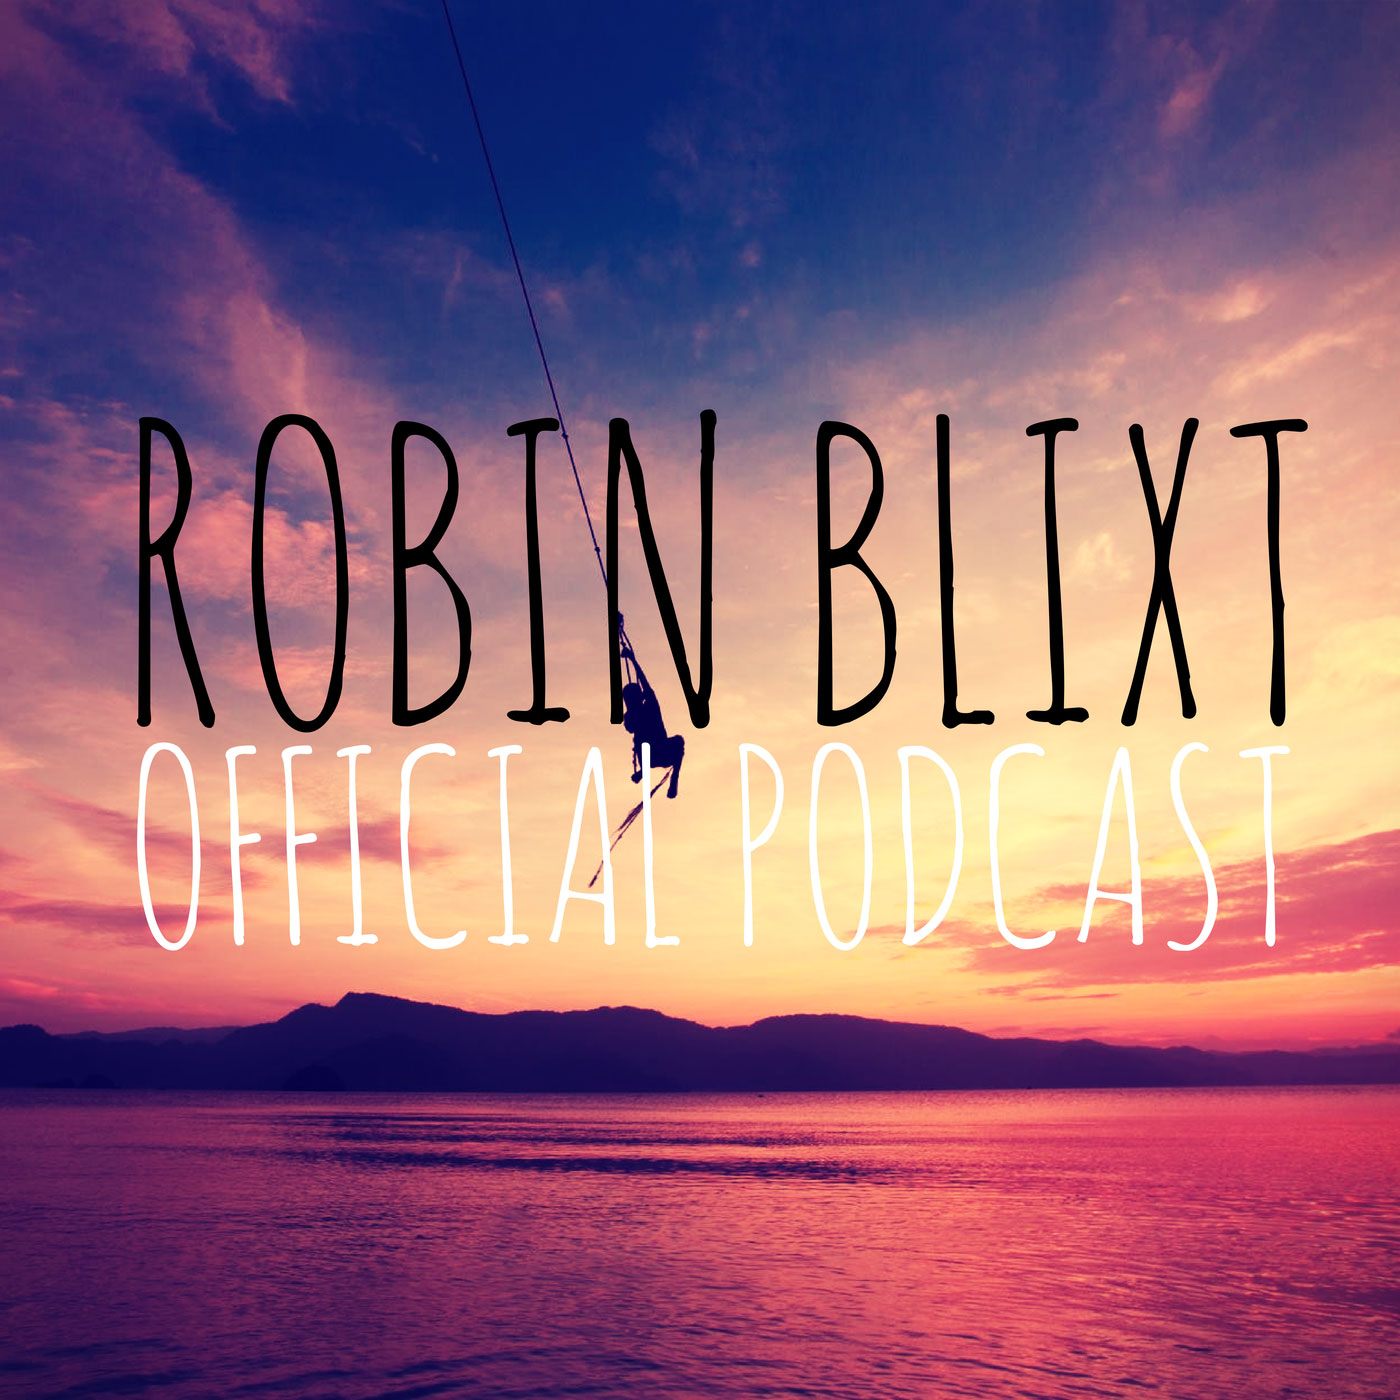 Official Podcast - Robin Blixt